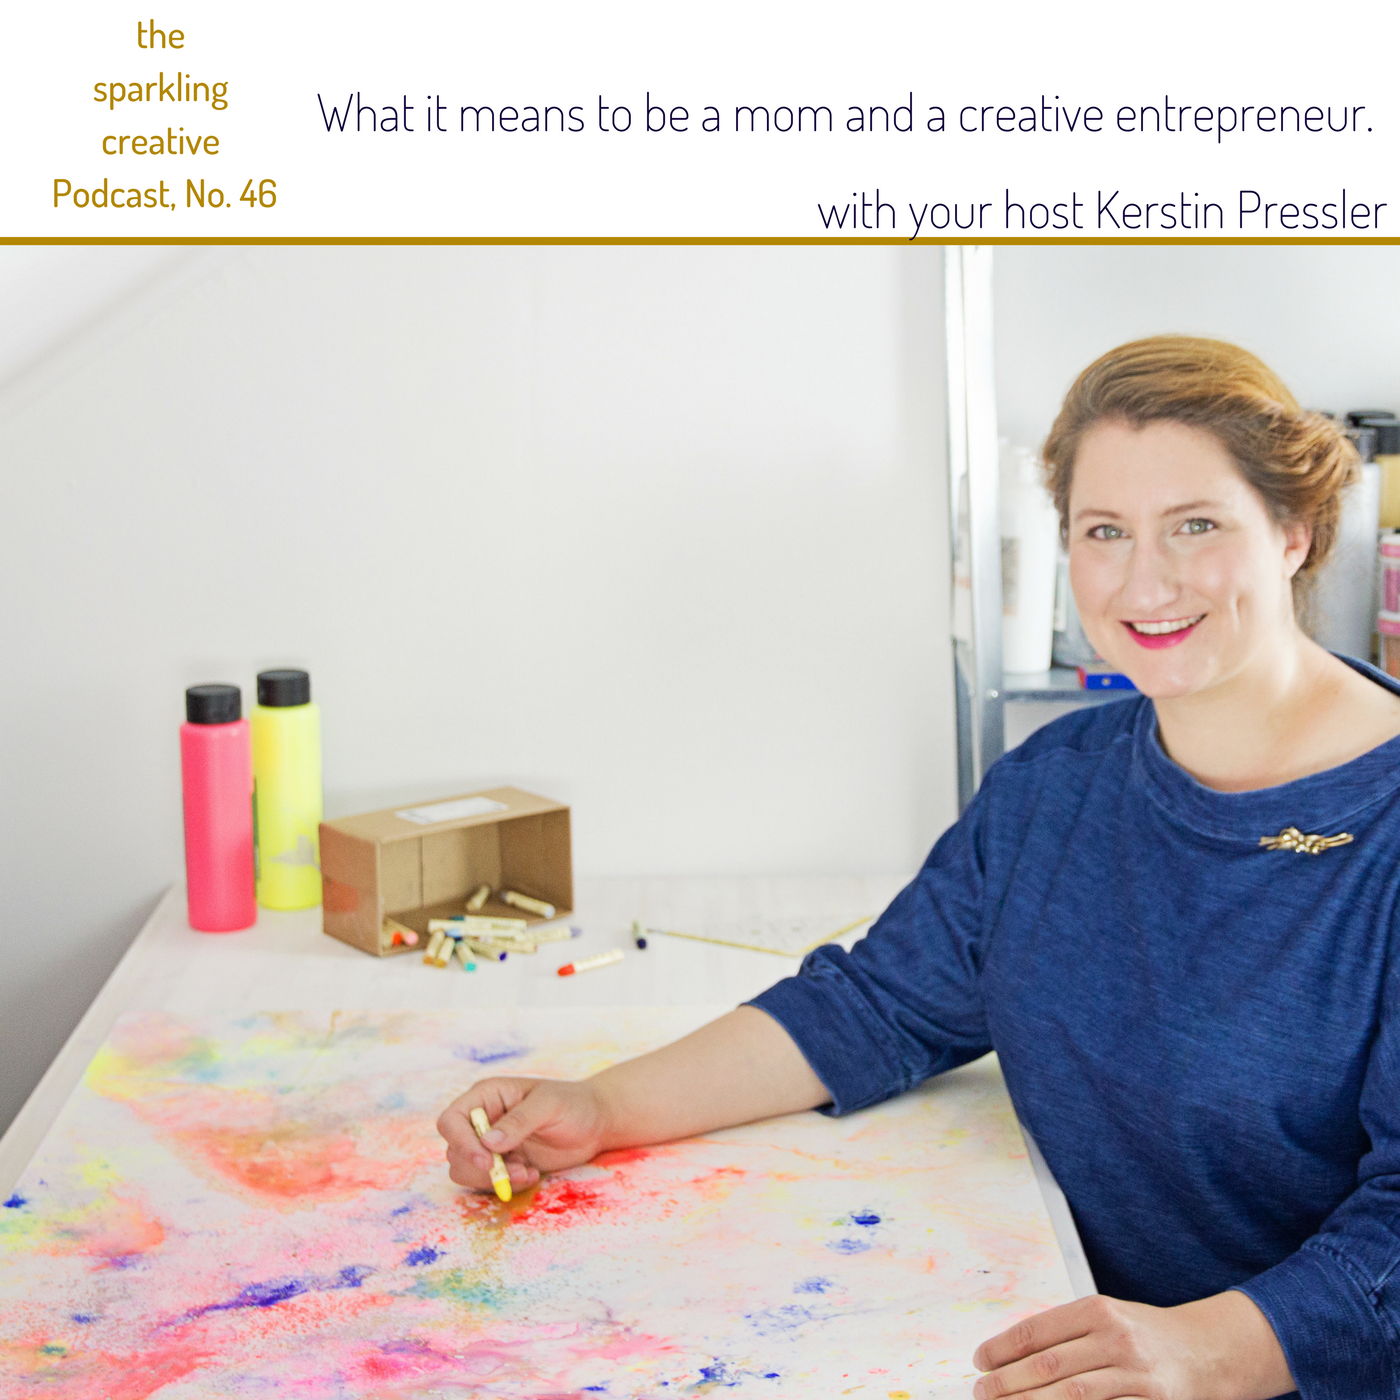 Artwork for Episode 46: What it means to be a mom and a creative entrepreneur